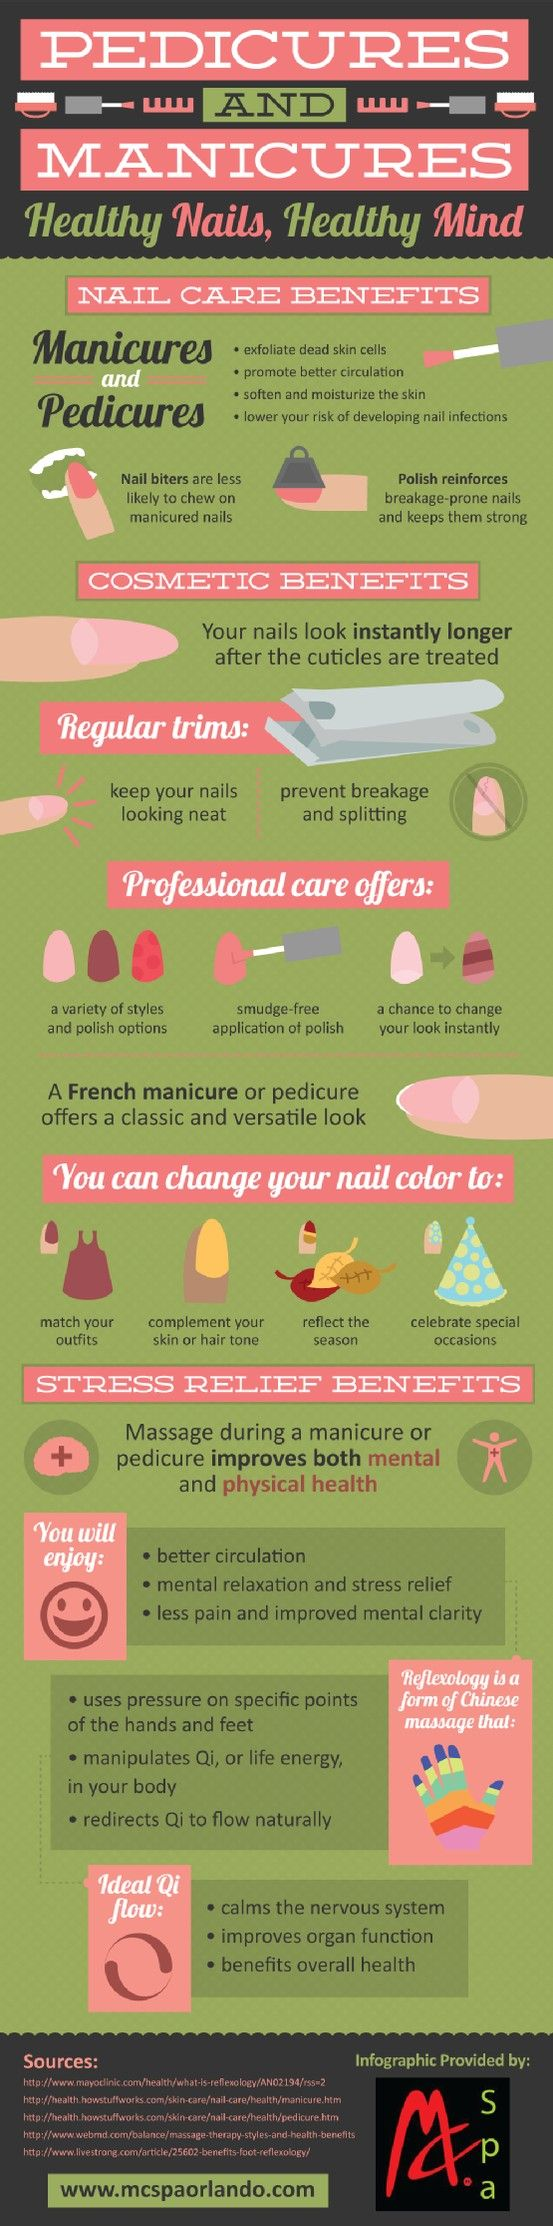 Do you bite your nails? If you get regular manicures, you can decrease the amount you chew on your nails. Learn more about the benefits of manicures and pedicures in this infographic from a spa in Orlando. Original source: http://www.mcspaorlando.com/675392/2013/04/04/benefits-of-pedicures-and-manicures--infographic.html